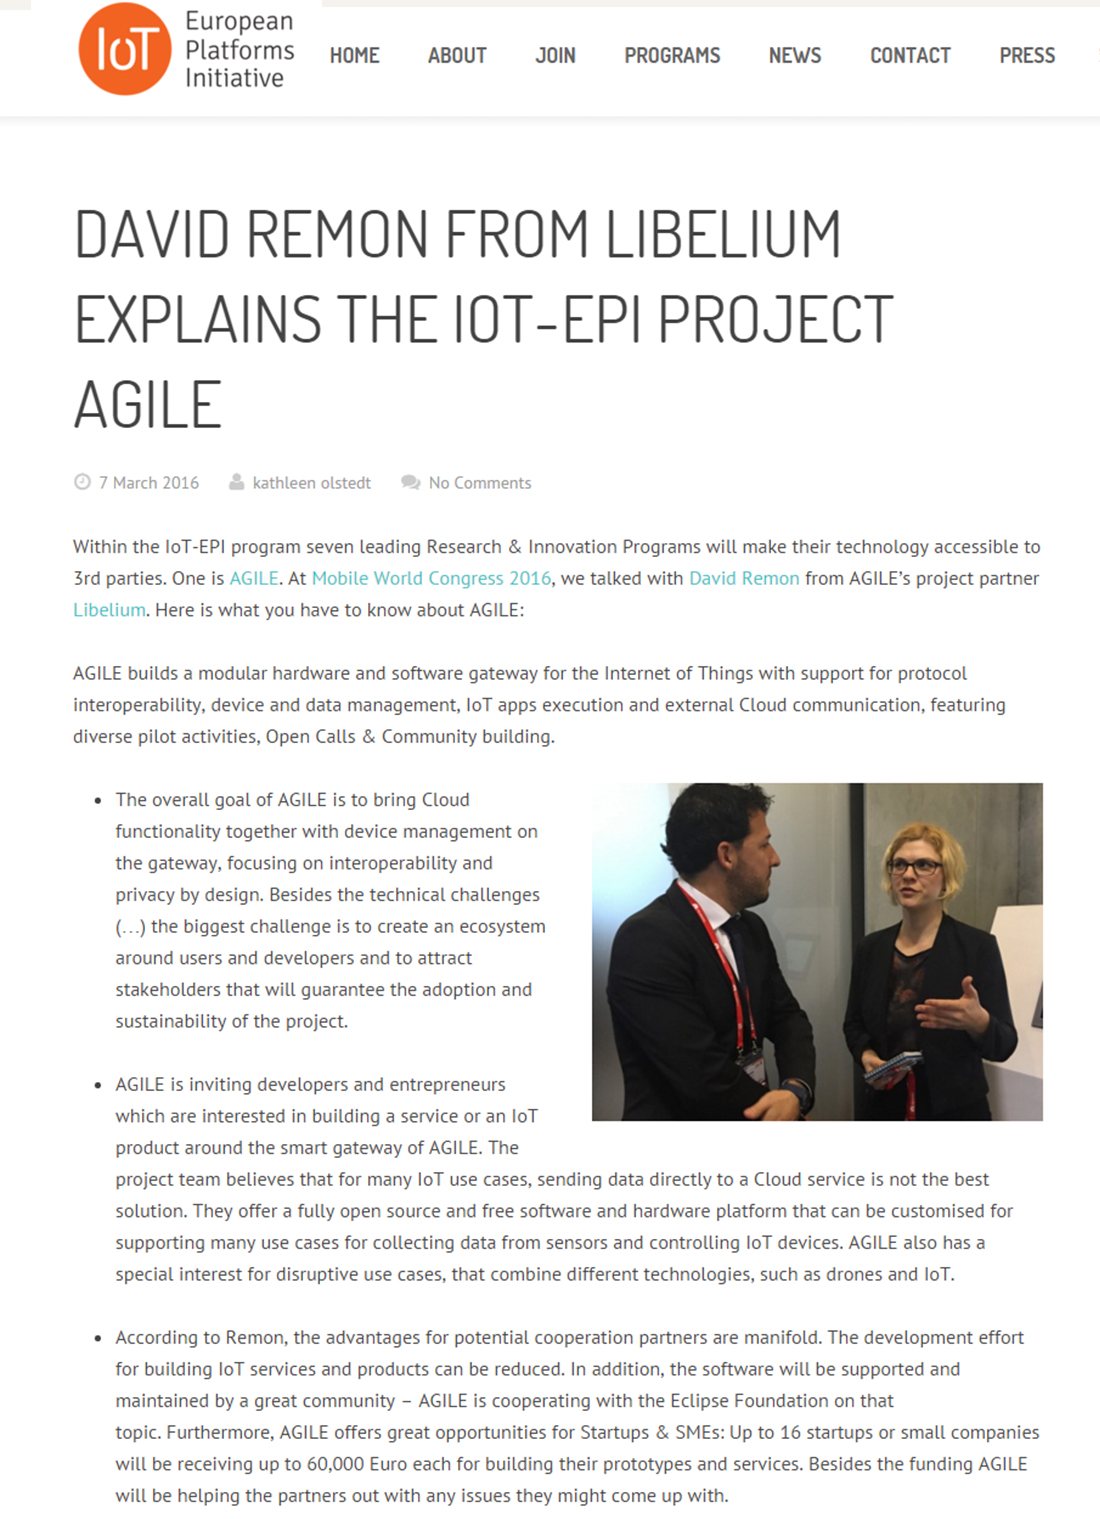 Iot-epi.eu – David Remon from Libelium Explains the IoT-EPI Project Agile